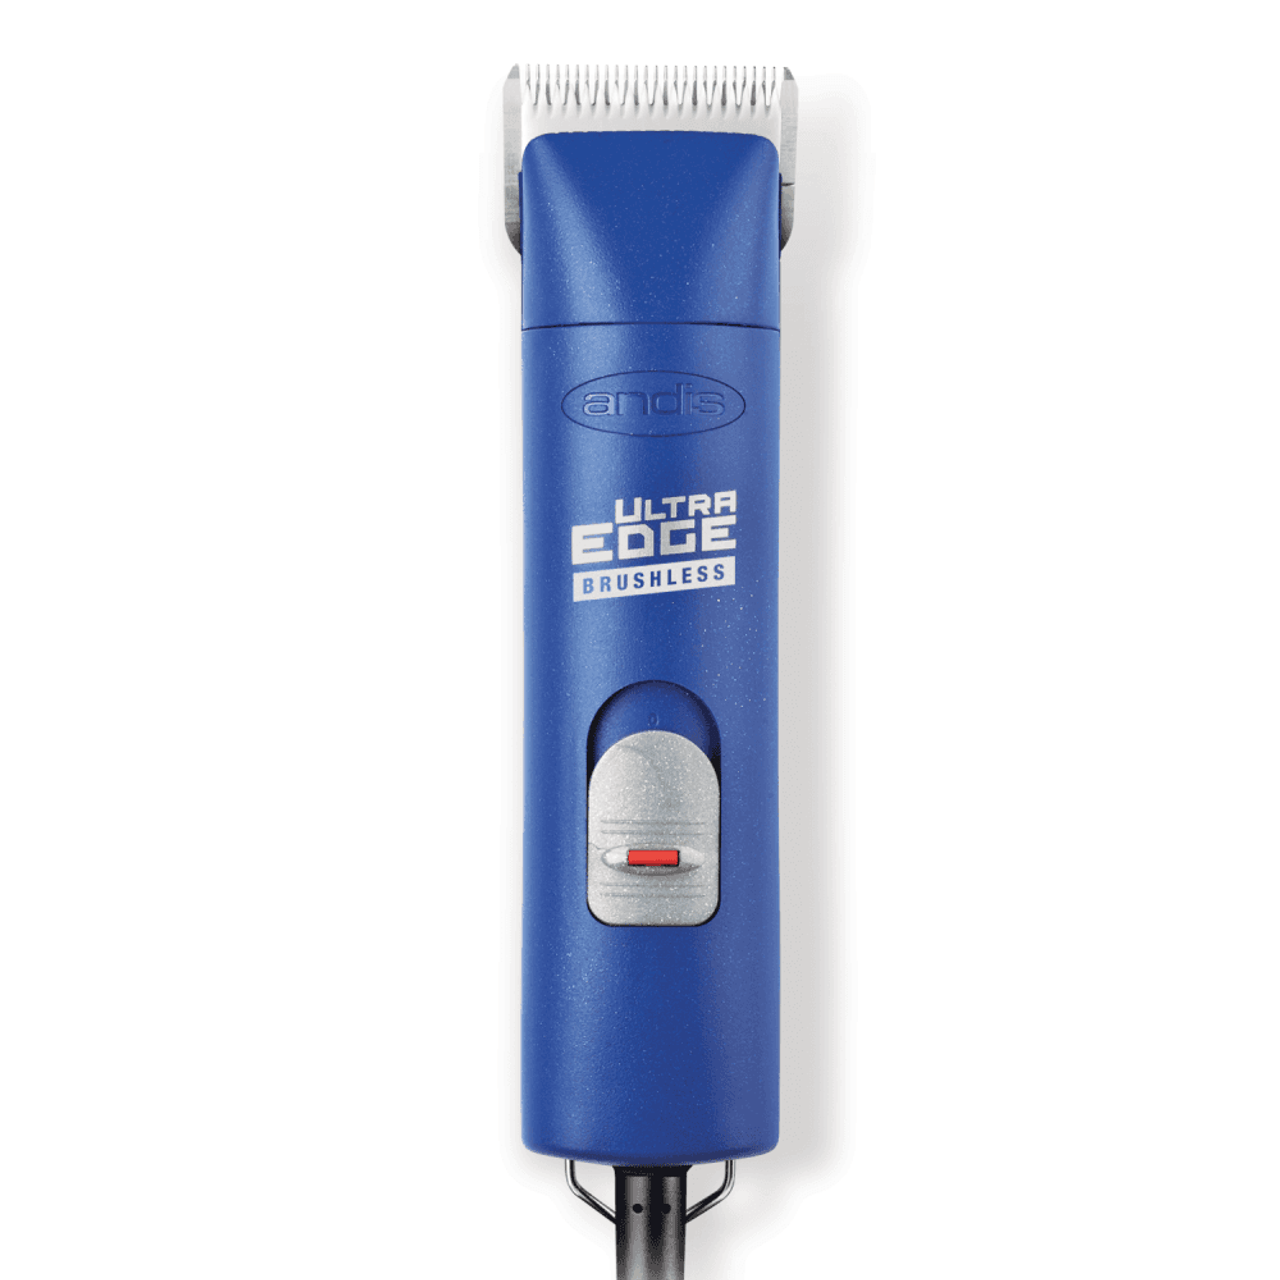 Andis Super Two Speed Brushless Clippers